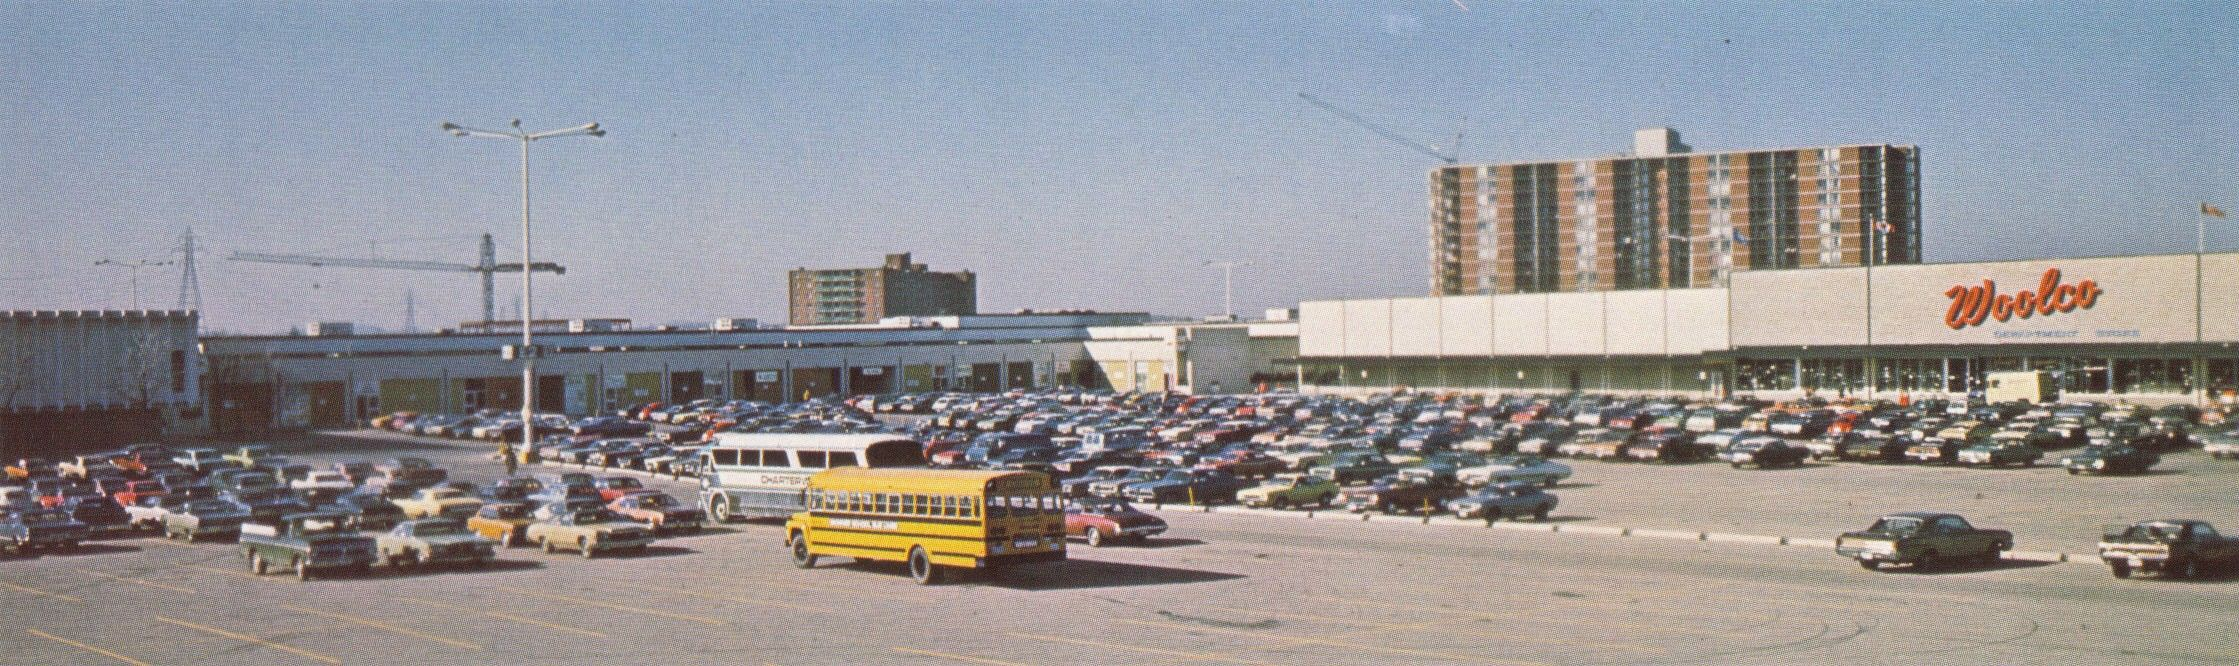 stores in kitchener waterloo ontario woolco at fairview plaza in kitchener fairview park